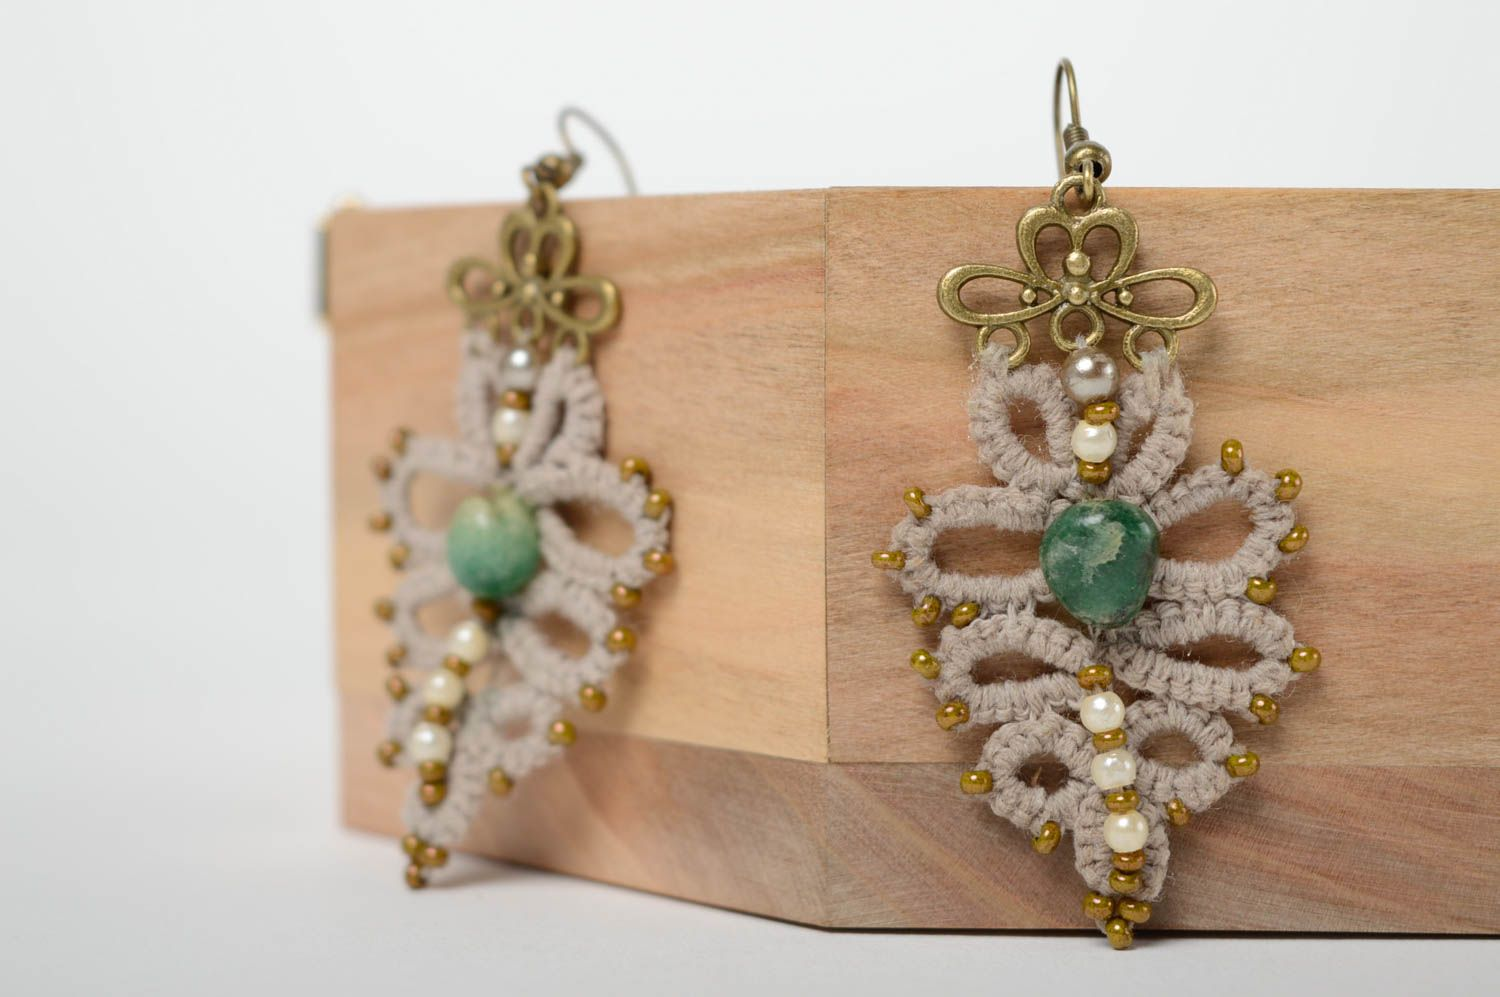 Crochet tatting earrings with natural stone photo 1